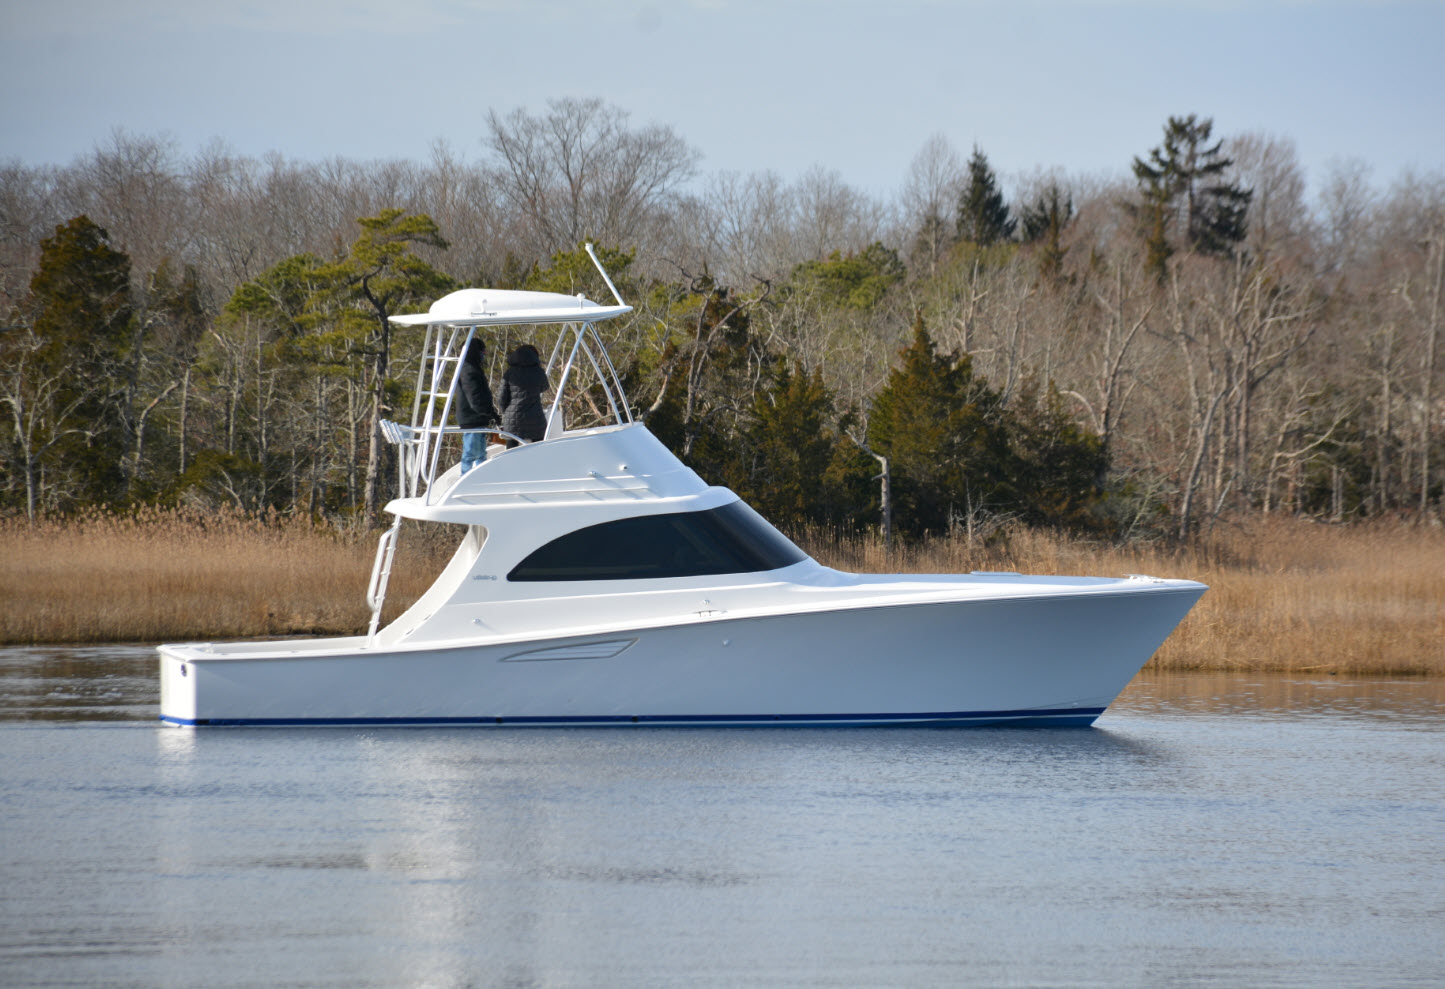 Viking 38 Billfish Main Profile 2